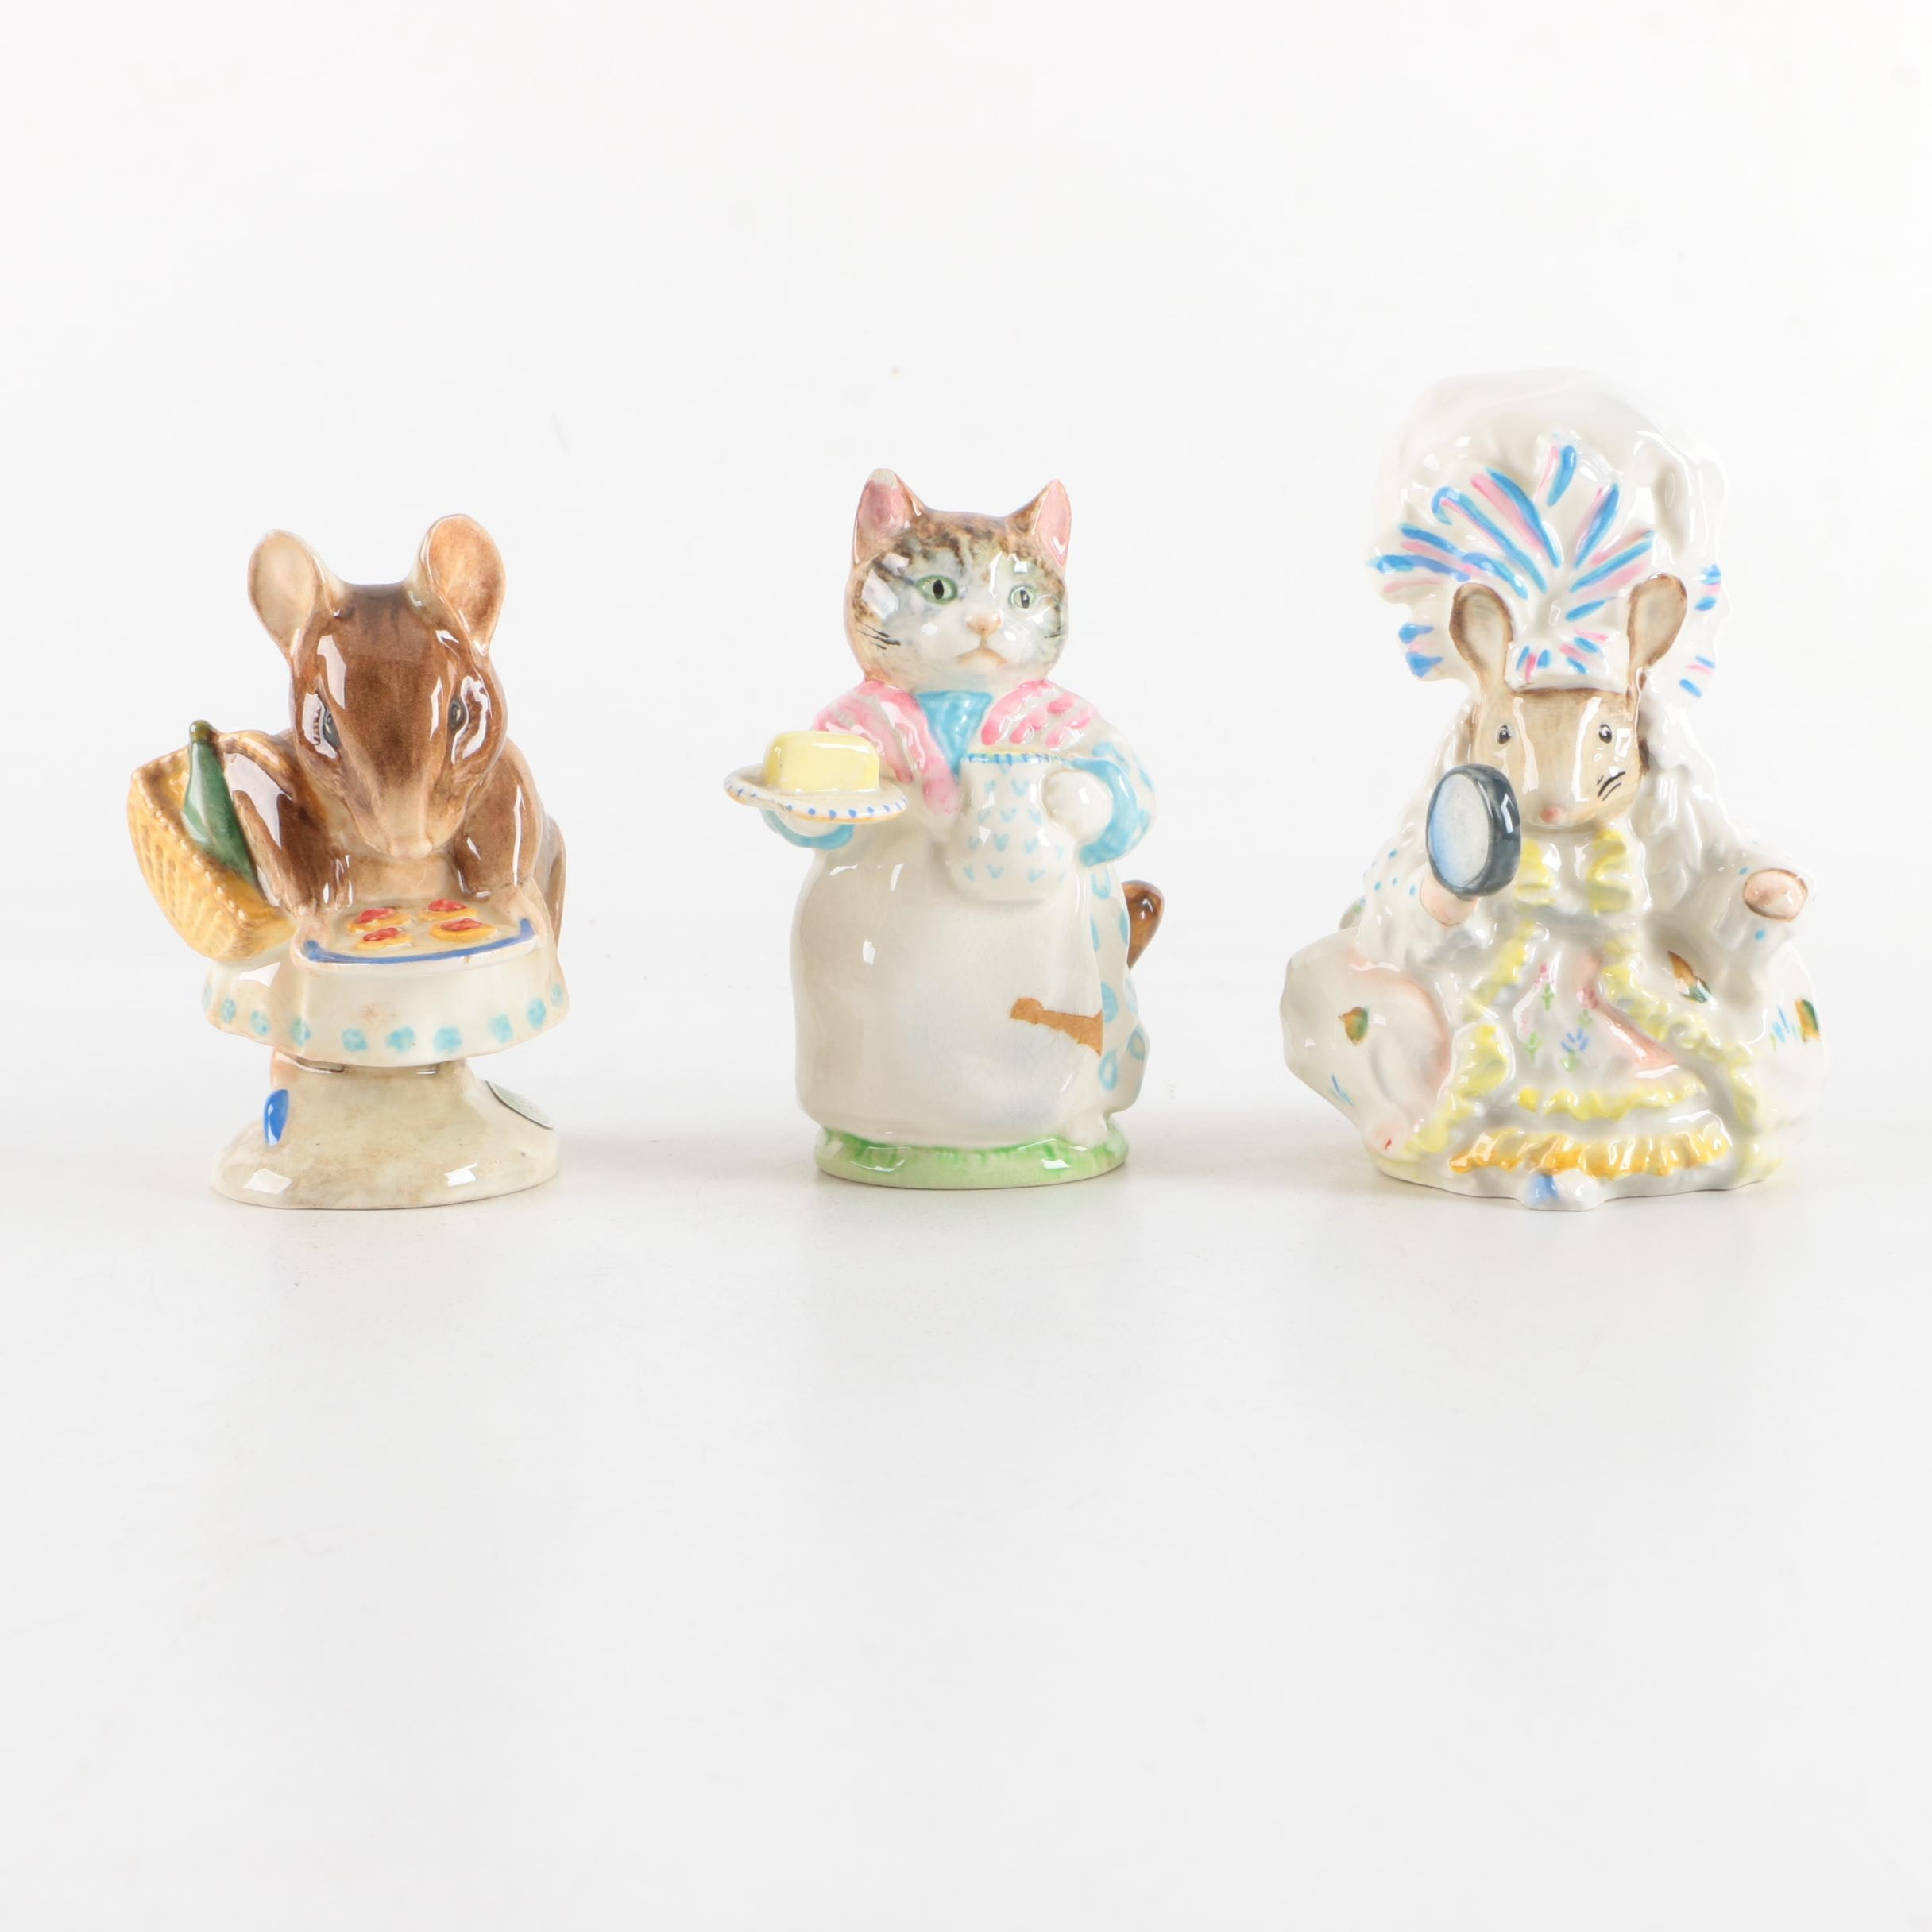 Collection of Beatrix Potter Ceramic Figurines